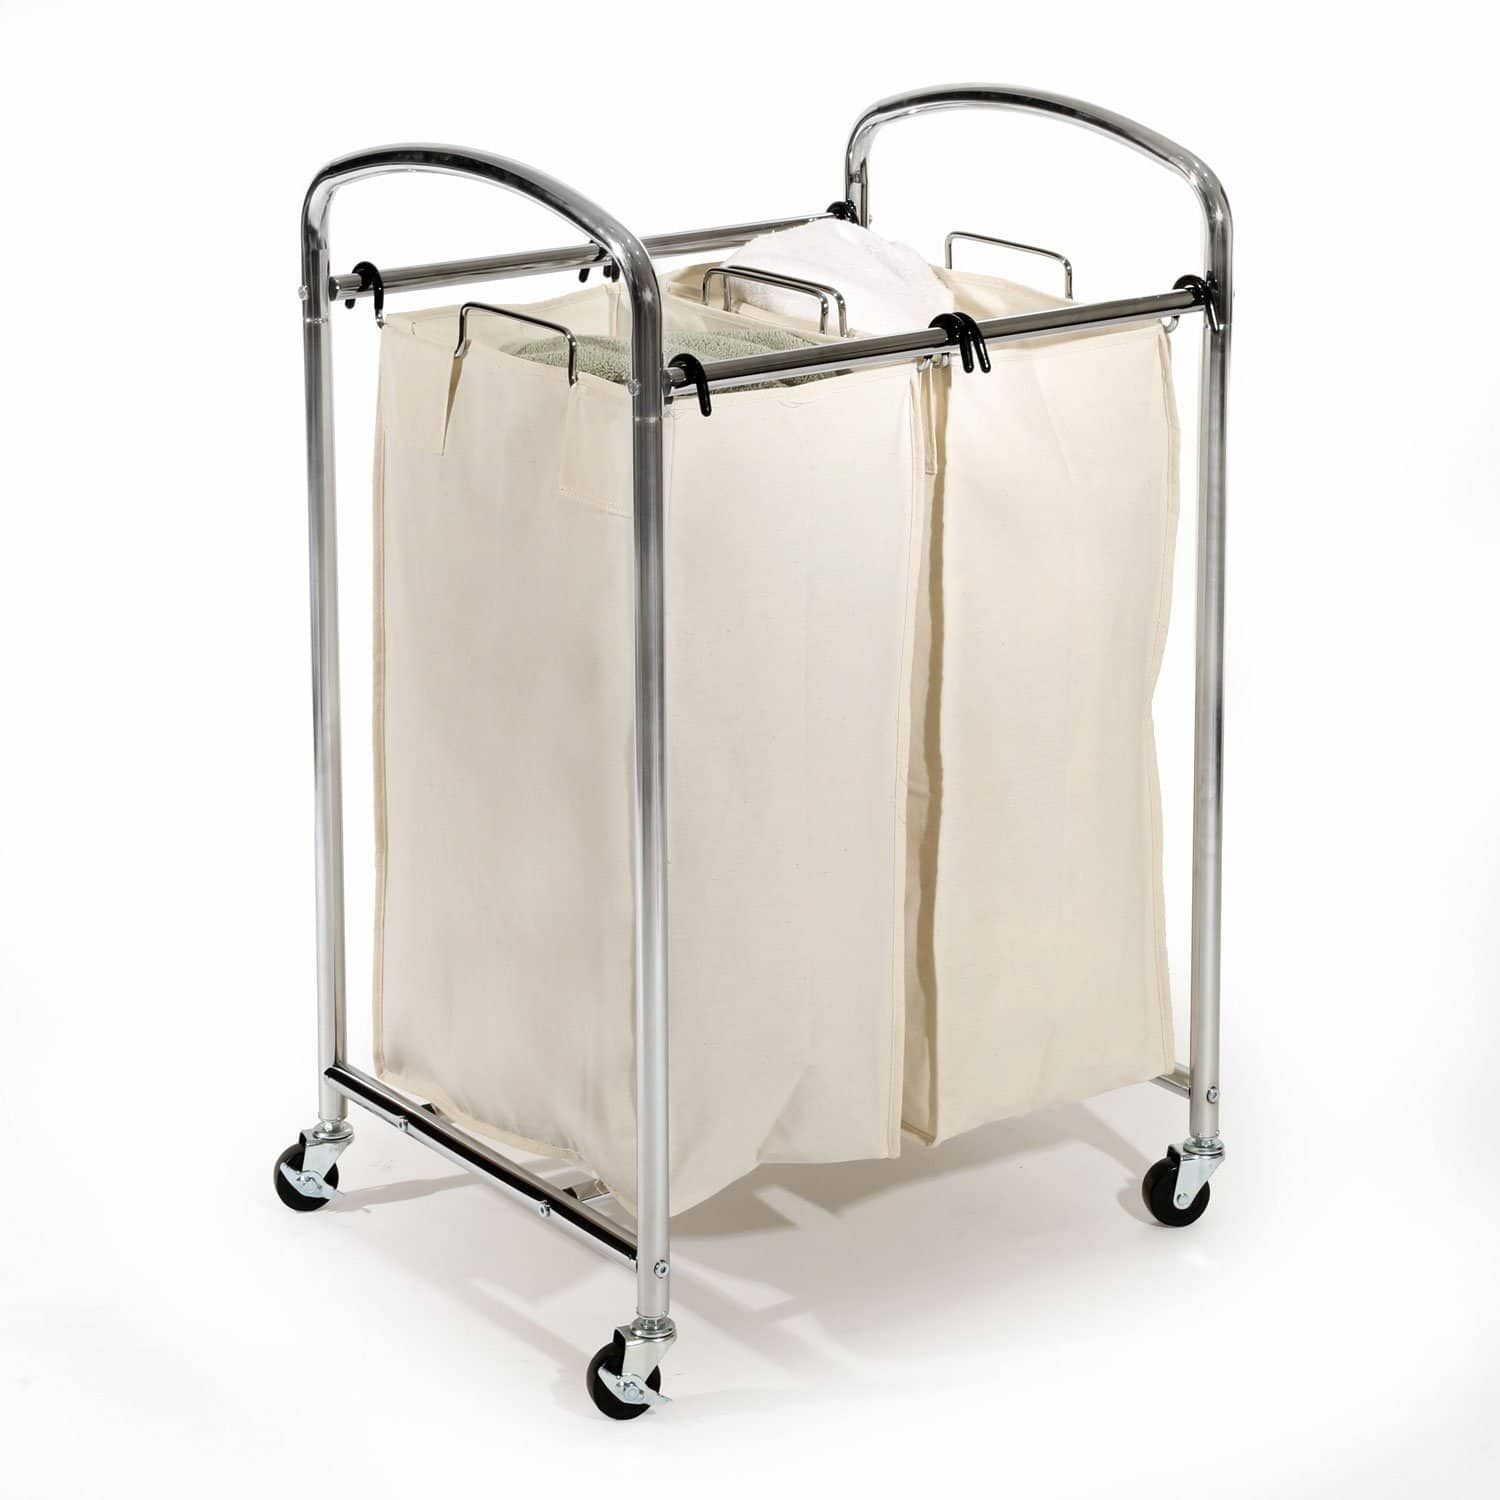 Top 10 Best Laundry Hampers In 2020 Reviews Laundry Hamper